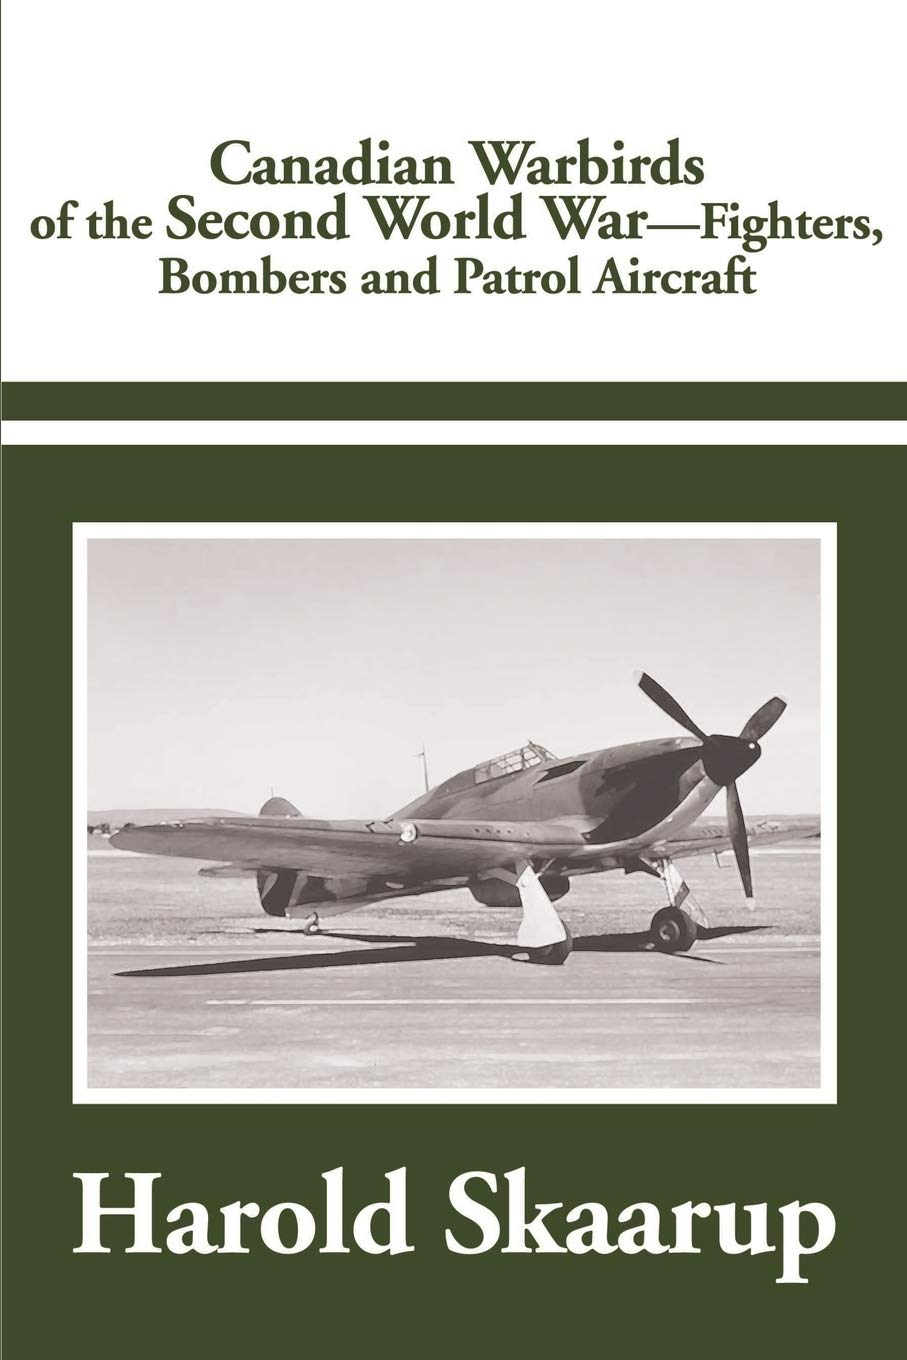 Canadian Warbirds of the Second World War: Fighters, Bombers and Patrol Aircraft